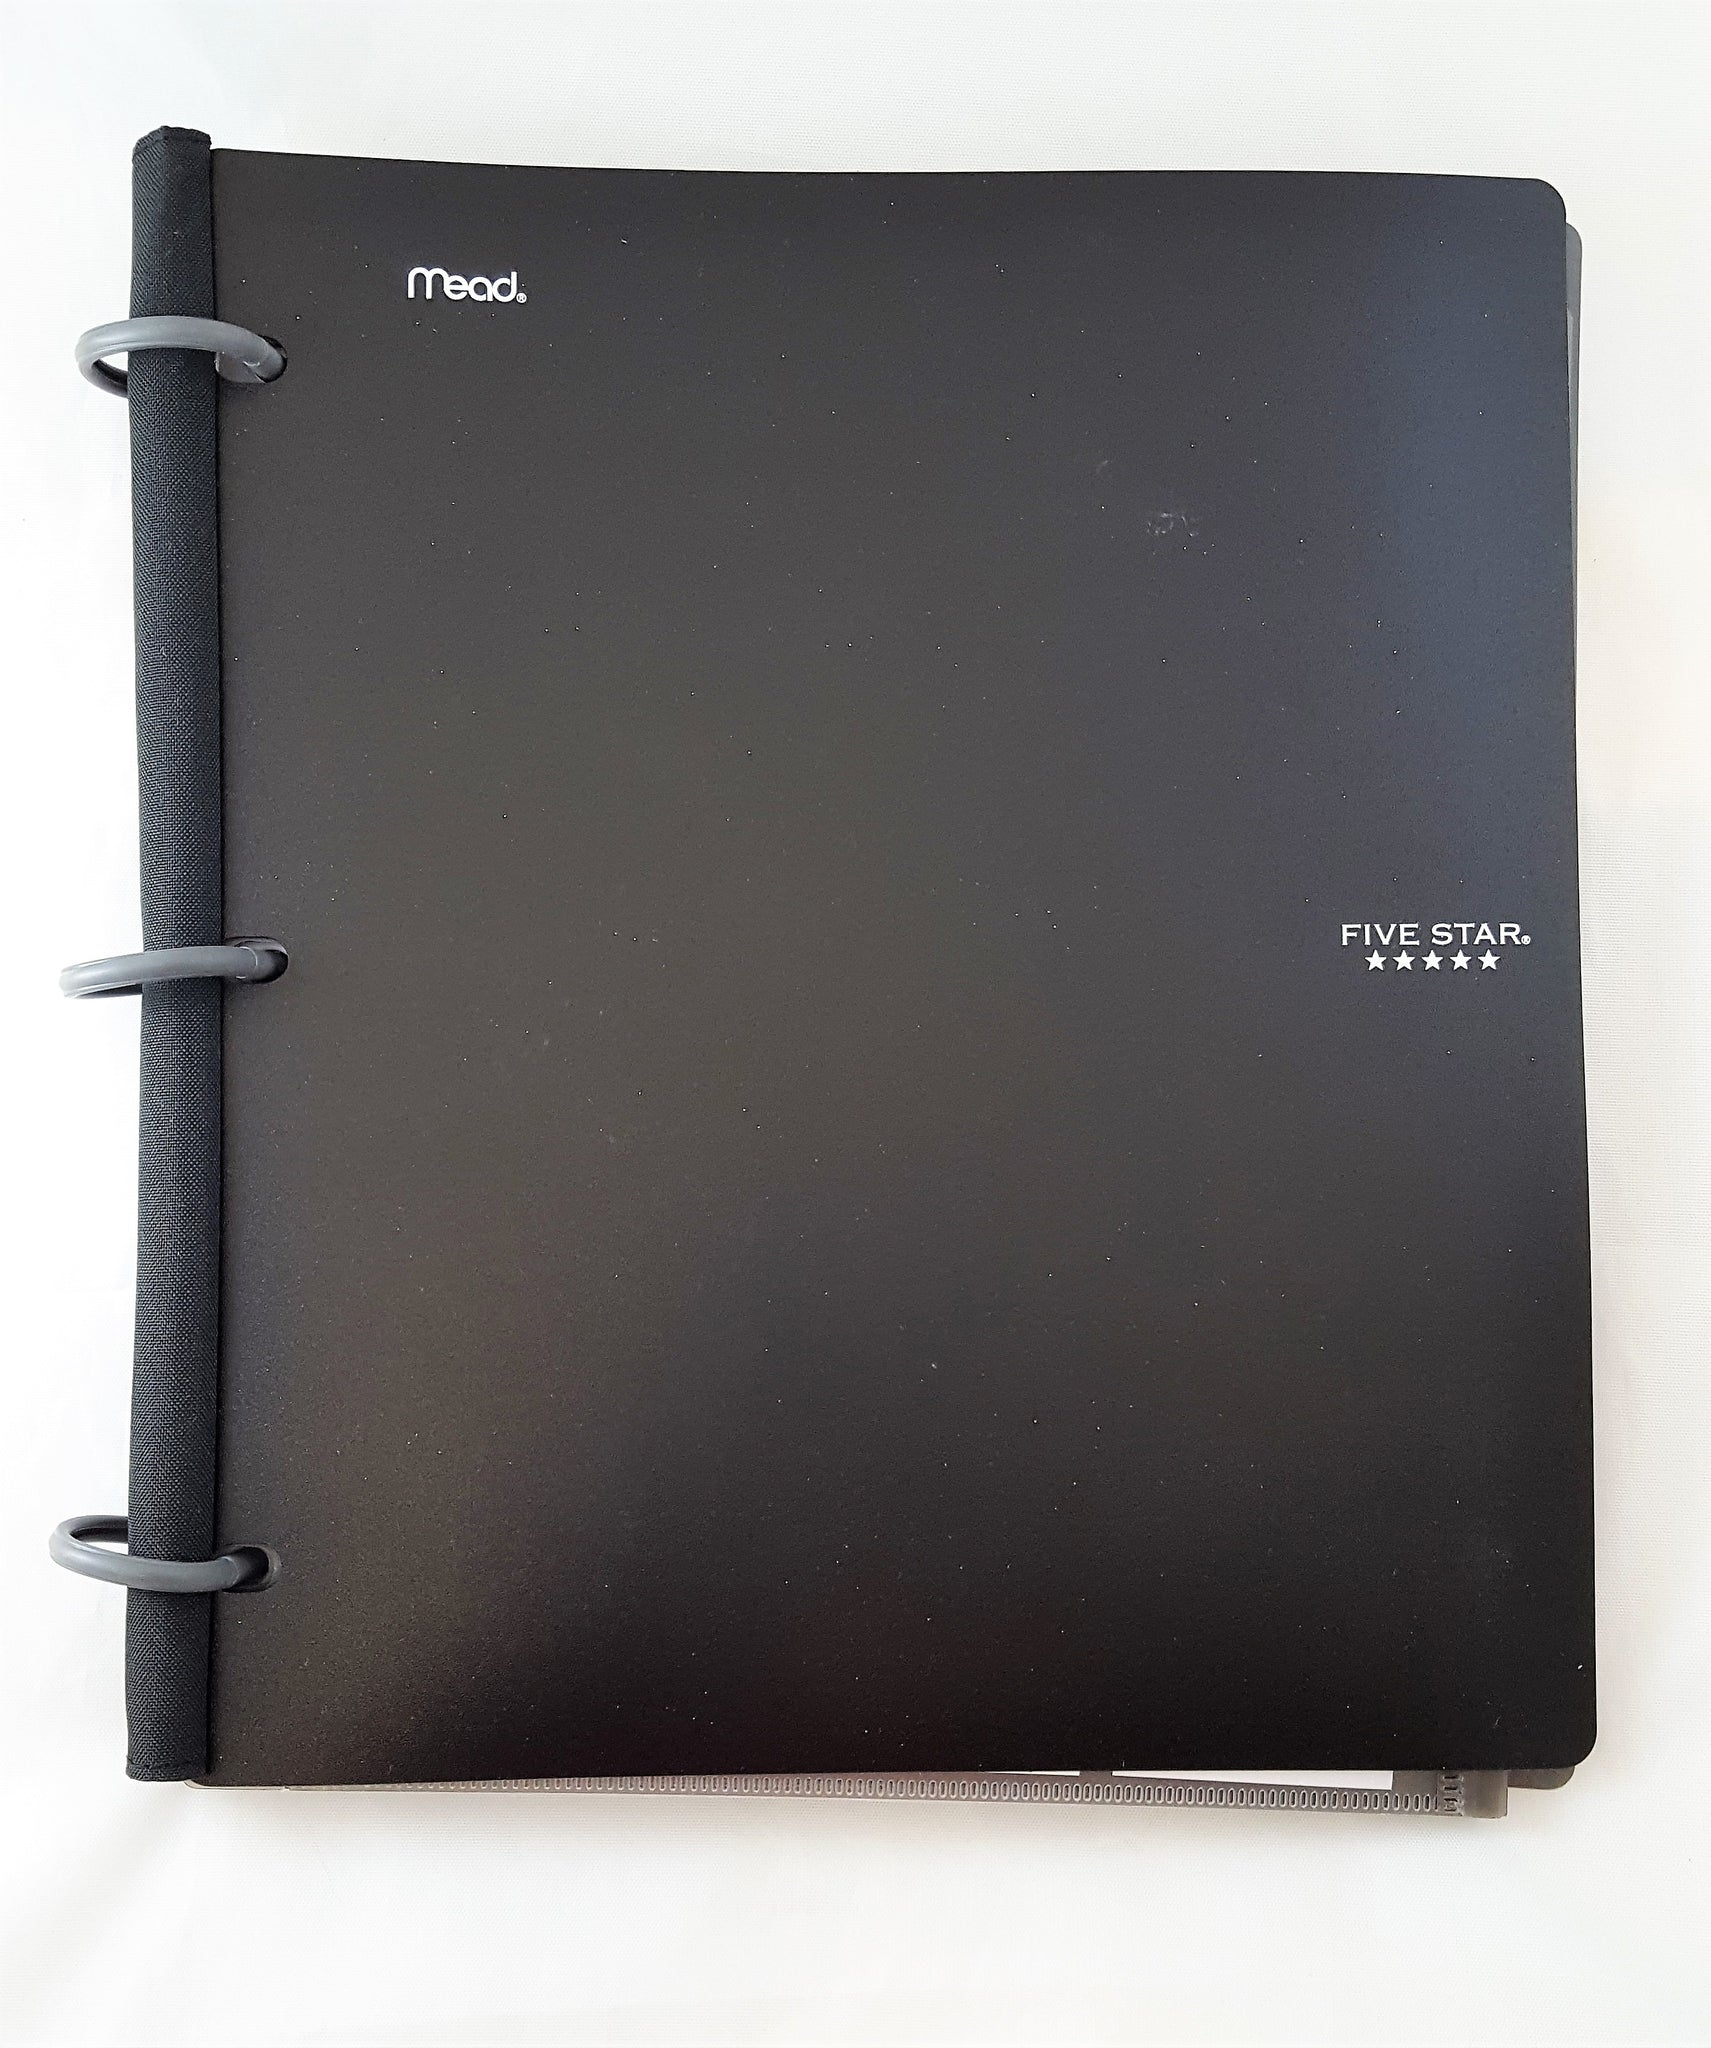 "Five Star Flex Hybrid 1"" NoteBinder, 11.5 x 10.75, Black (72009)"